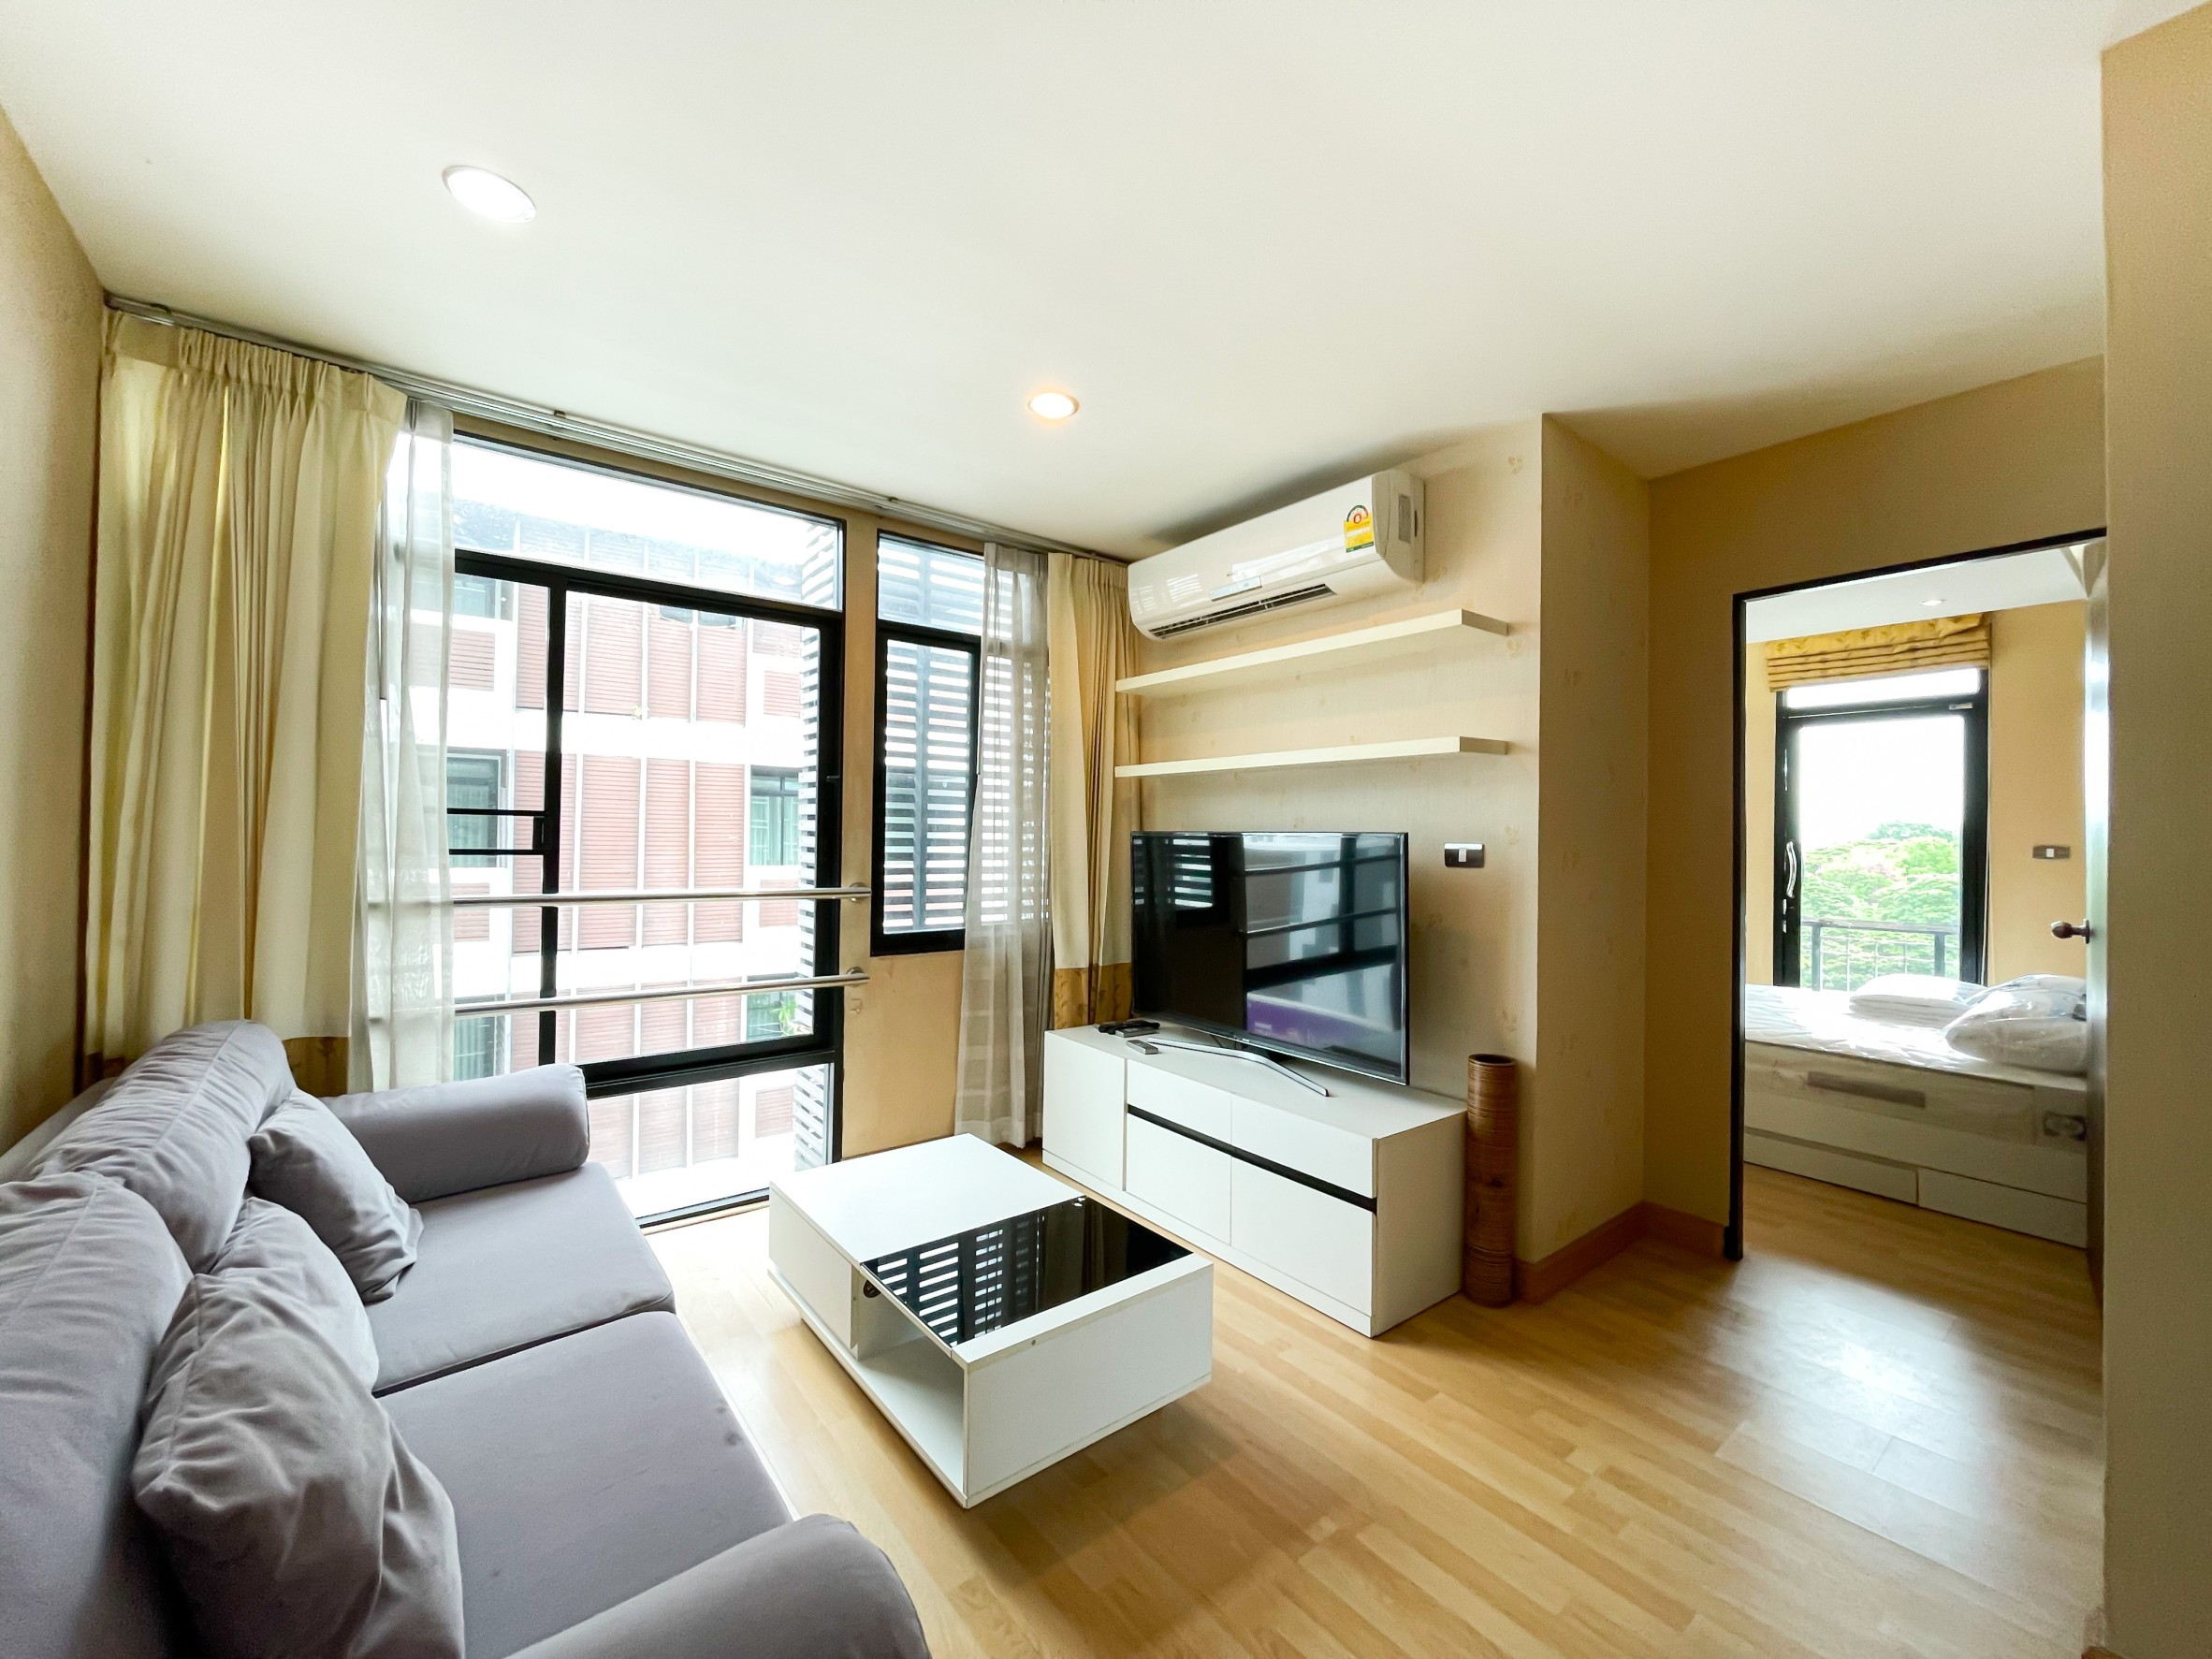 2 Bedroom Condo Sale or Rent Jigsaw 2 Chiang Mai